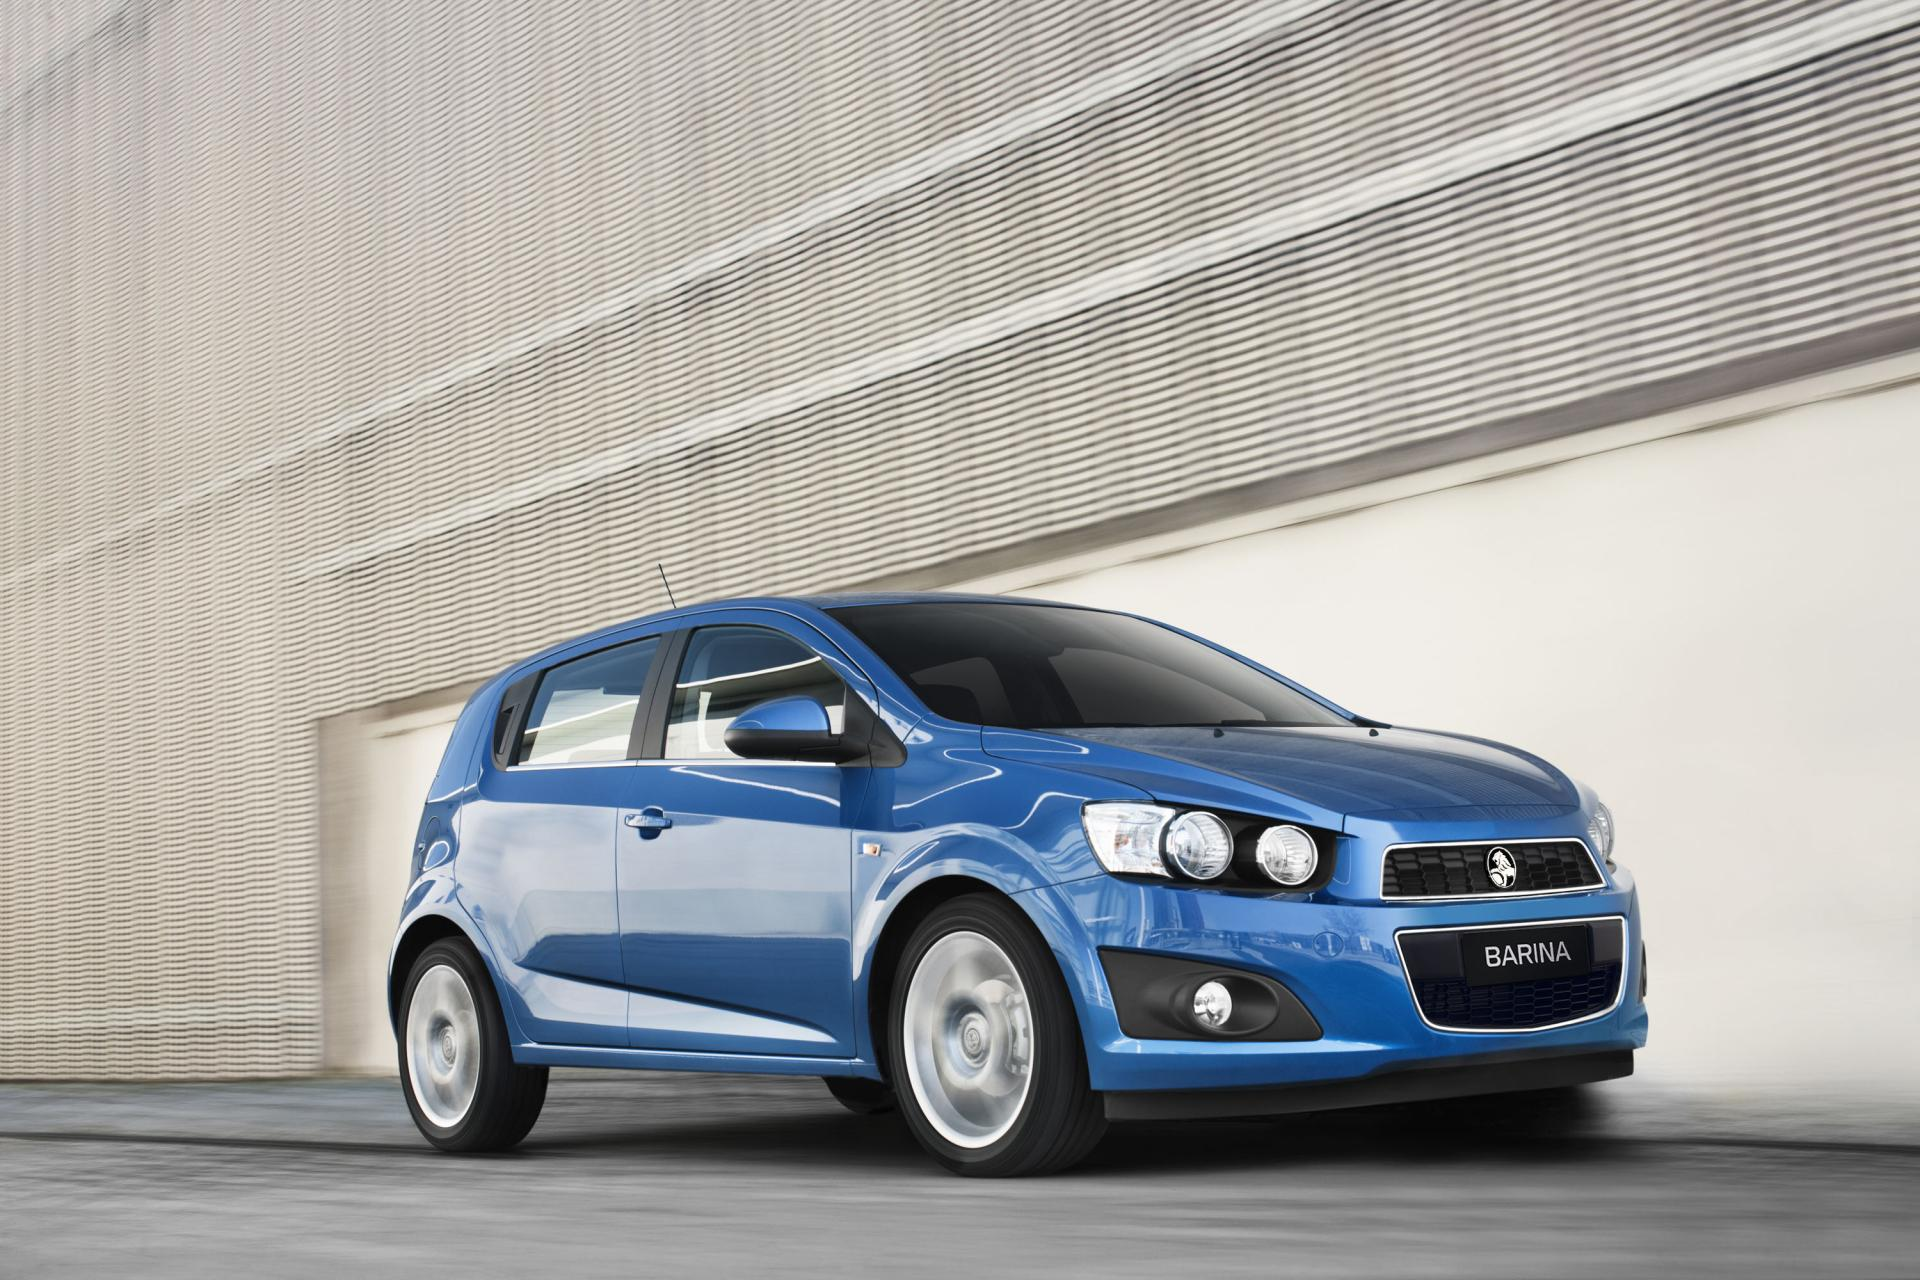 2011 Holden Barina News And Information Conceptcarz Com